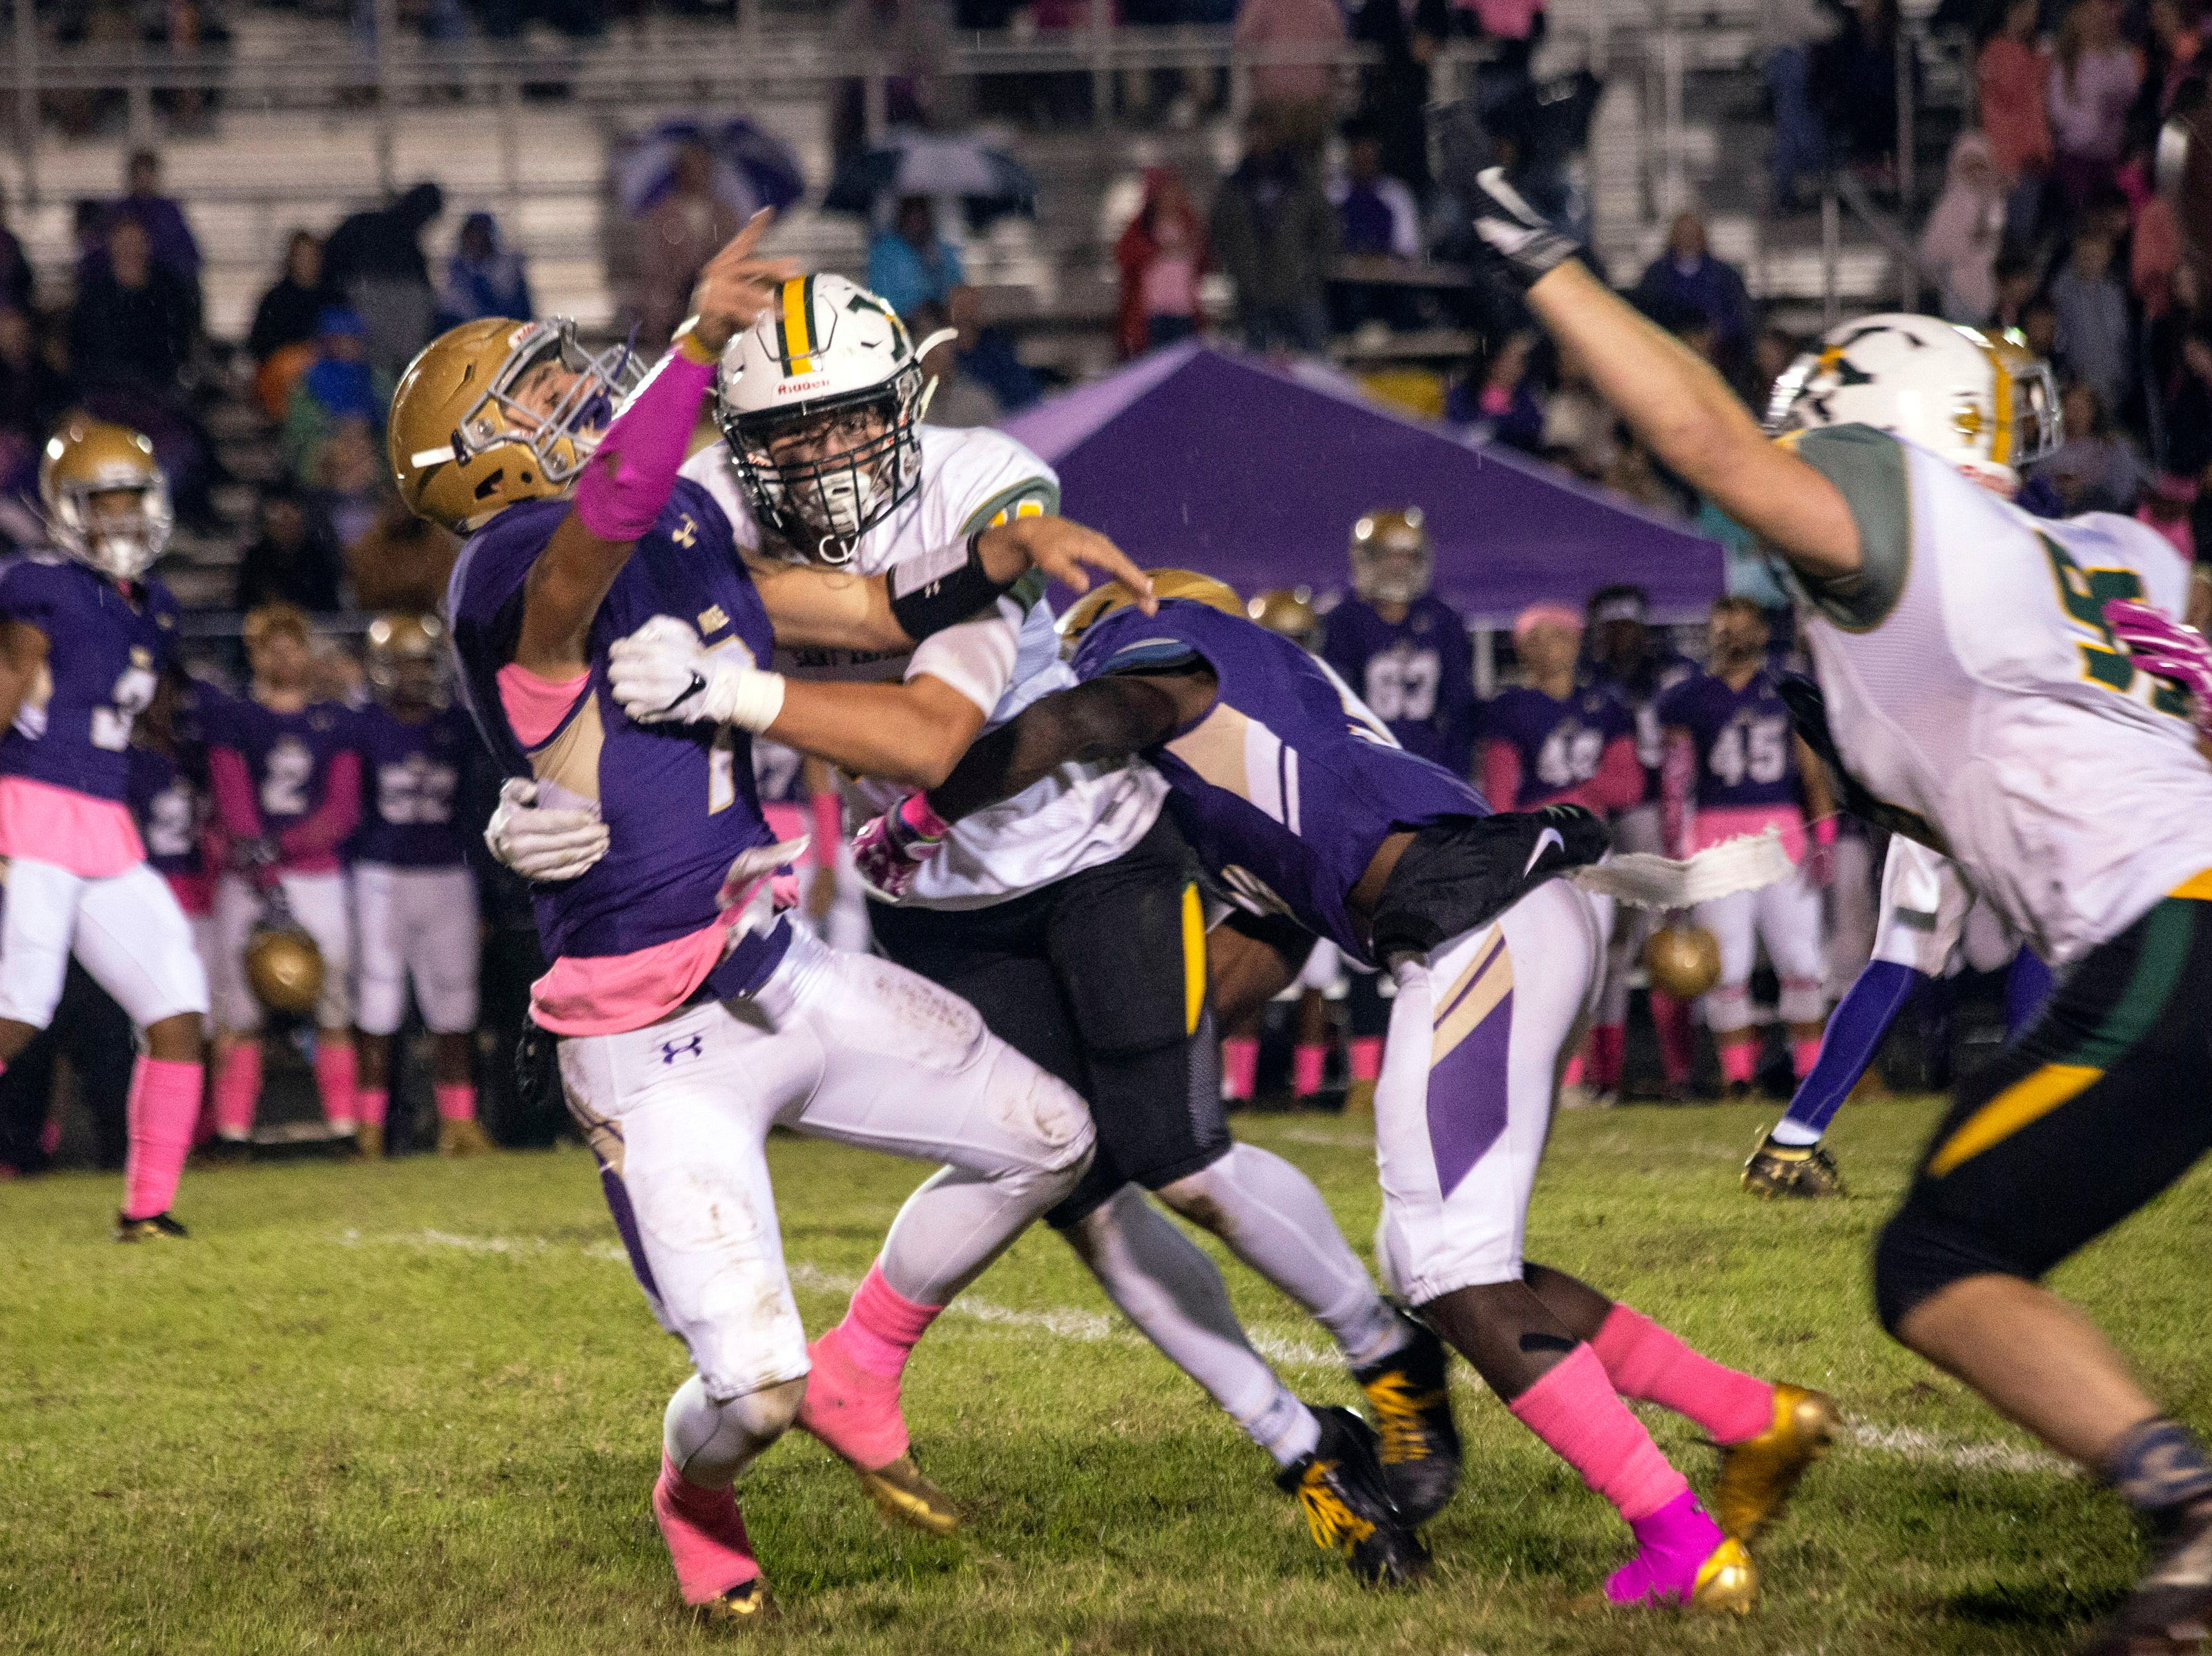 Male quarterback Garrett Dennis is pounded by the St. X defense resulting in a pick-6 touchdown. Oct. 12, 2018